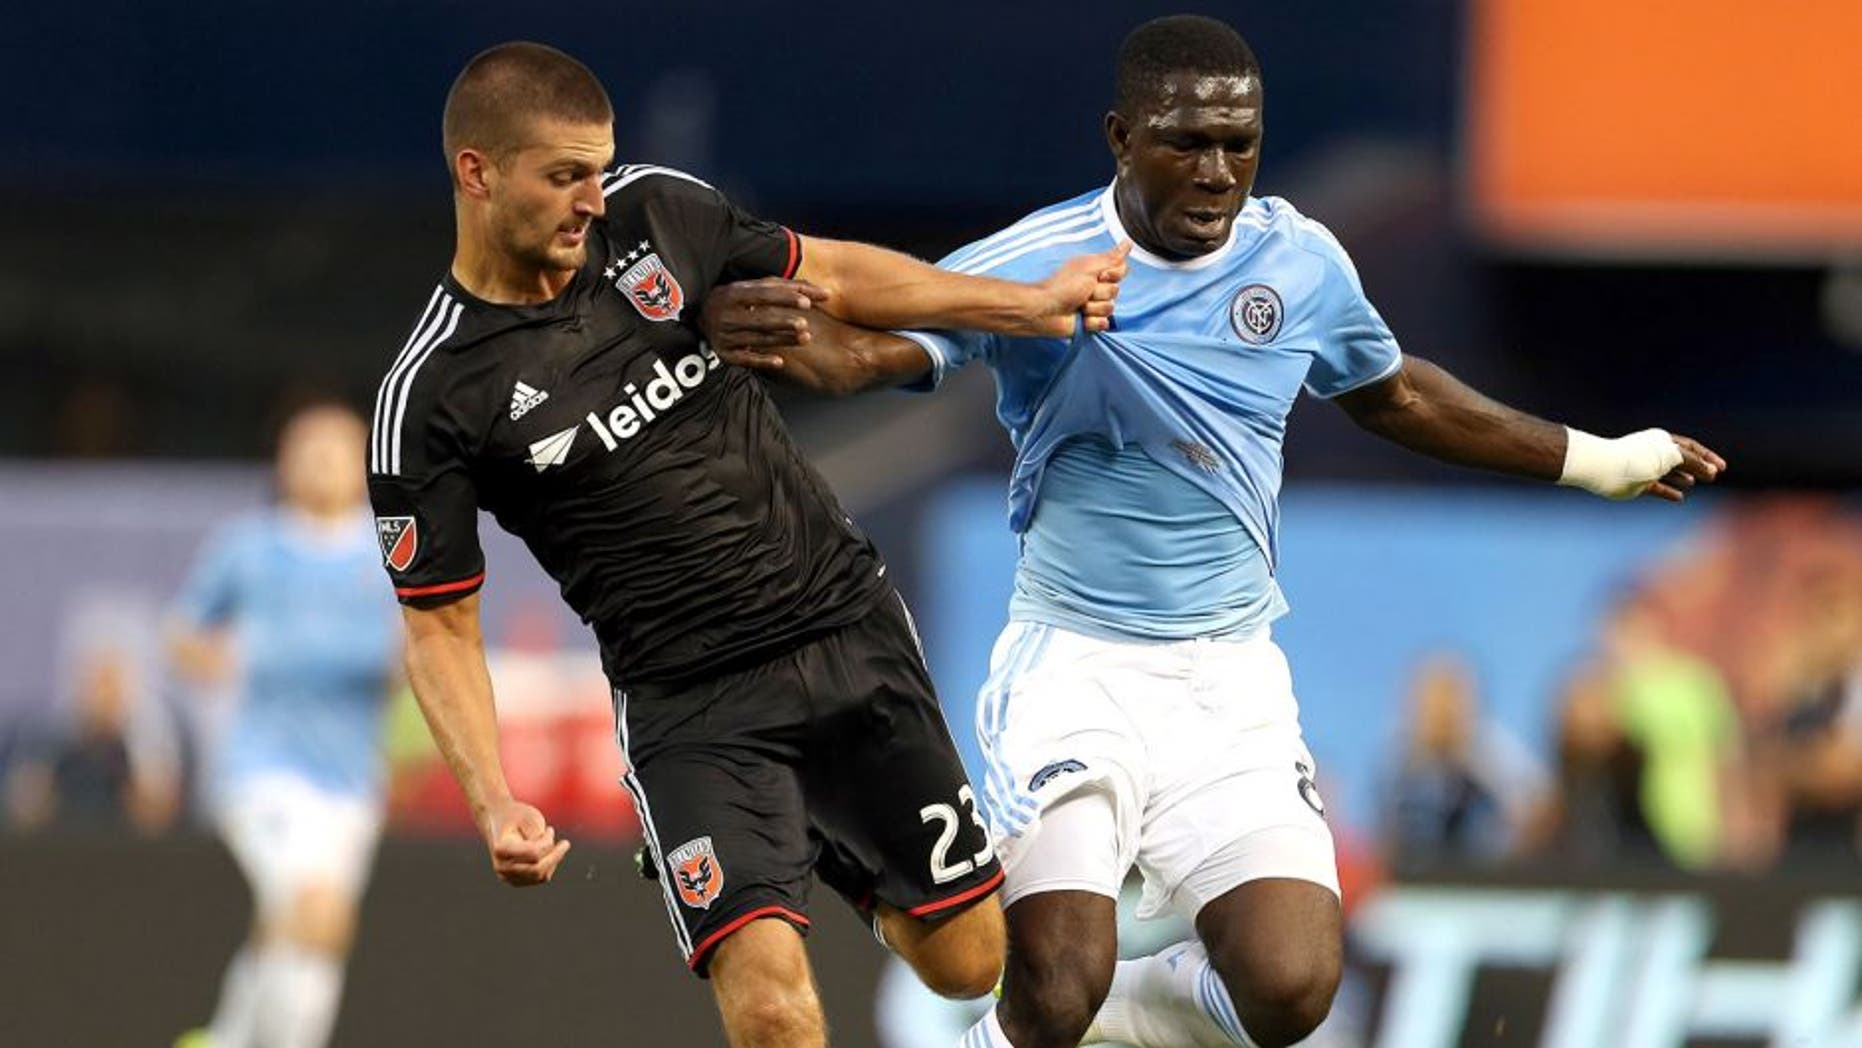 Aug 13, 2015; New York, NY, USA; New York City FC midfielder Kwadwo Poku (88) battles for the ball with D.C. United midfielder Perry Kitchen (23) during the first half of their soccer match at Yankee Stadium. Mandatory Credit: Adam Hunger-USA TODAY Sports